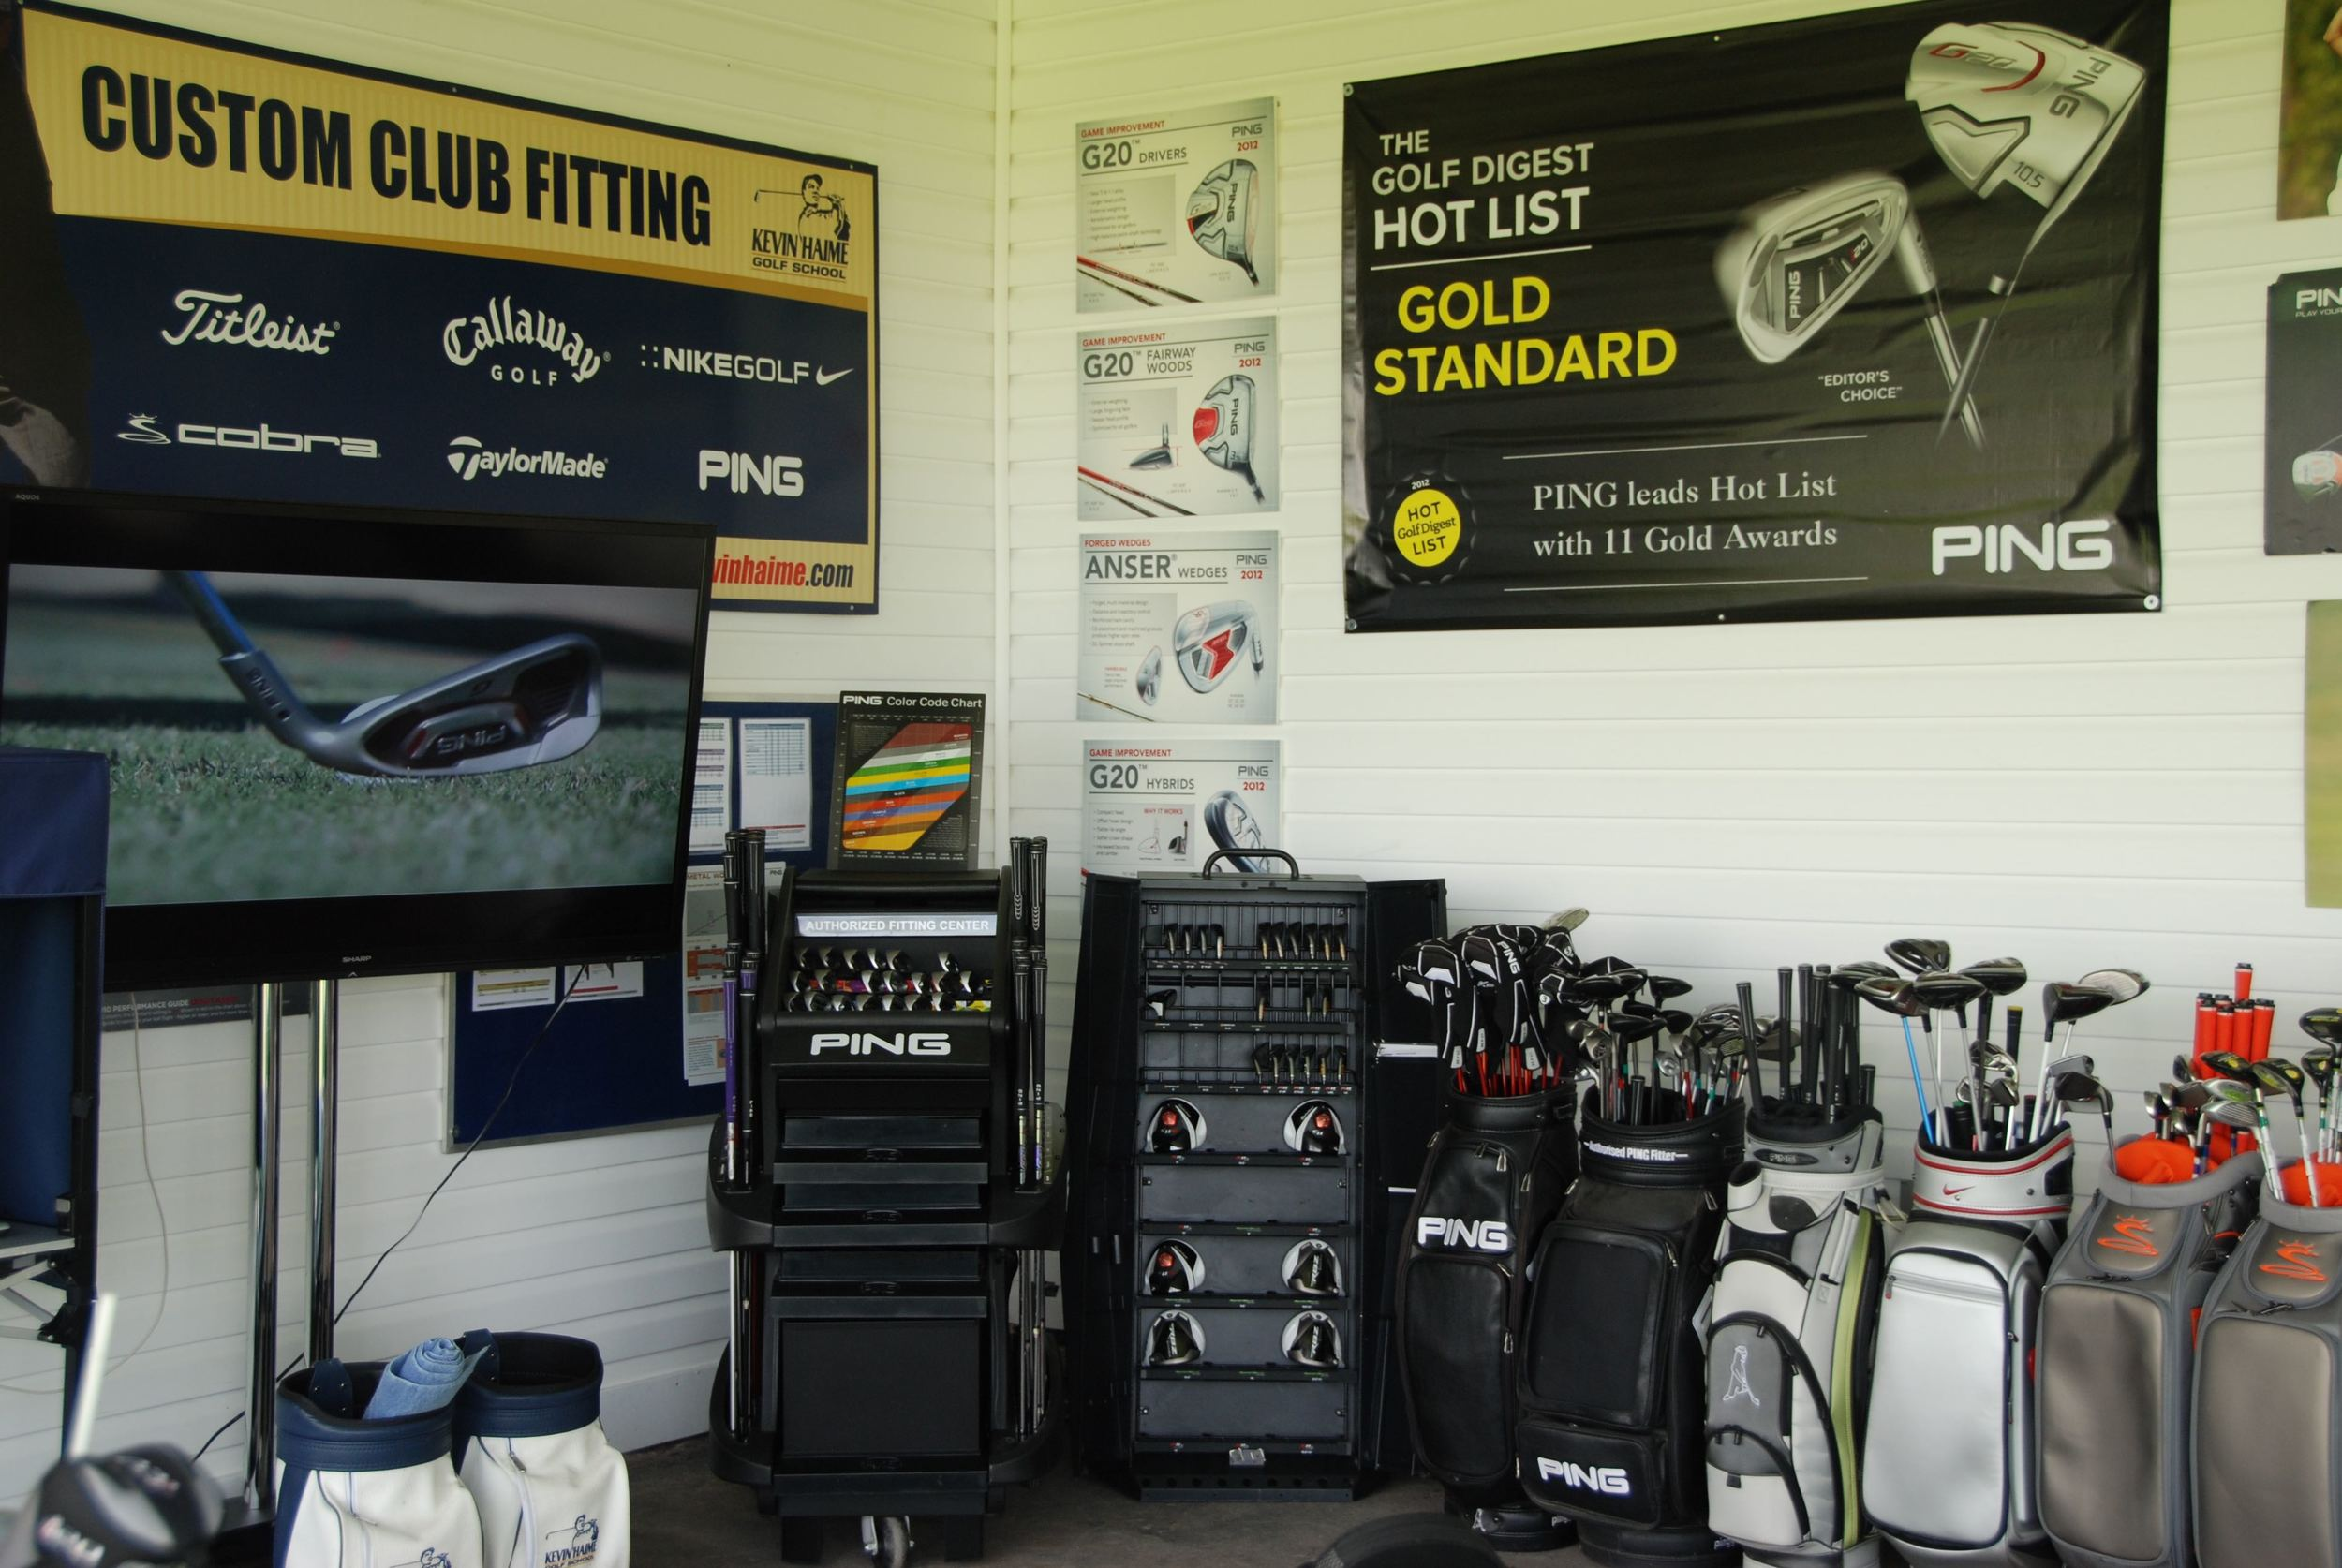 Custom club fitters for PING, Titleist, Cobra Golf, TaylorMade, Callway Golf and Mizuno